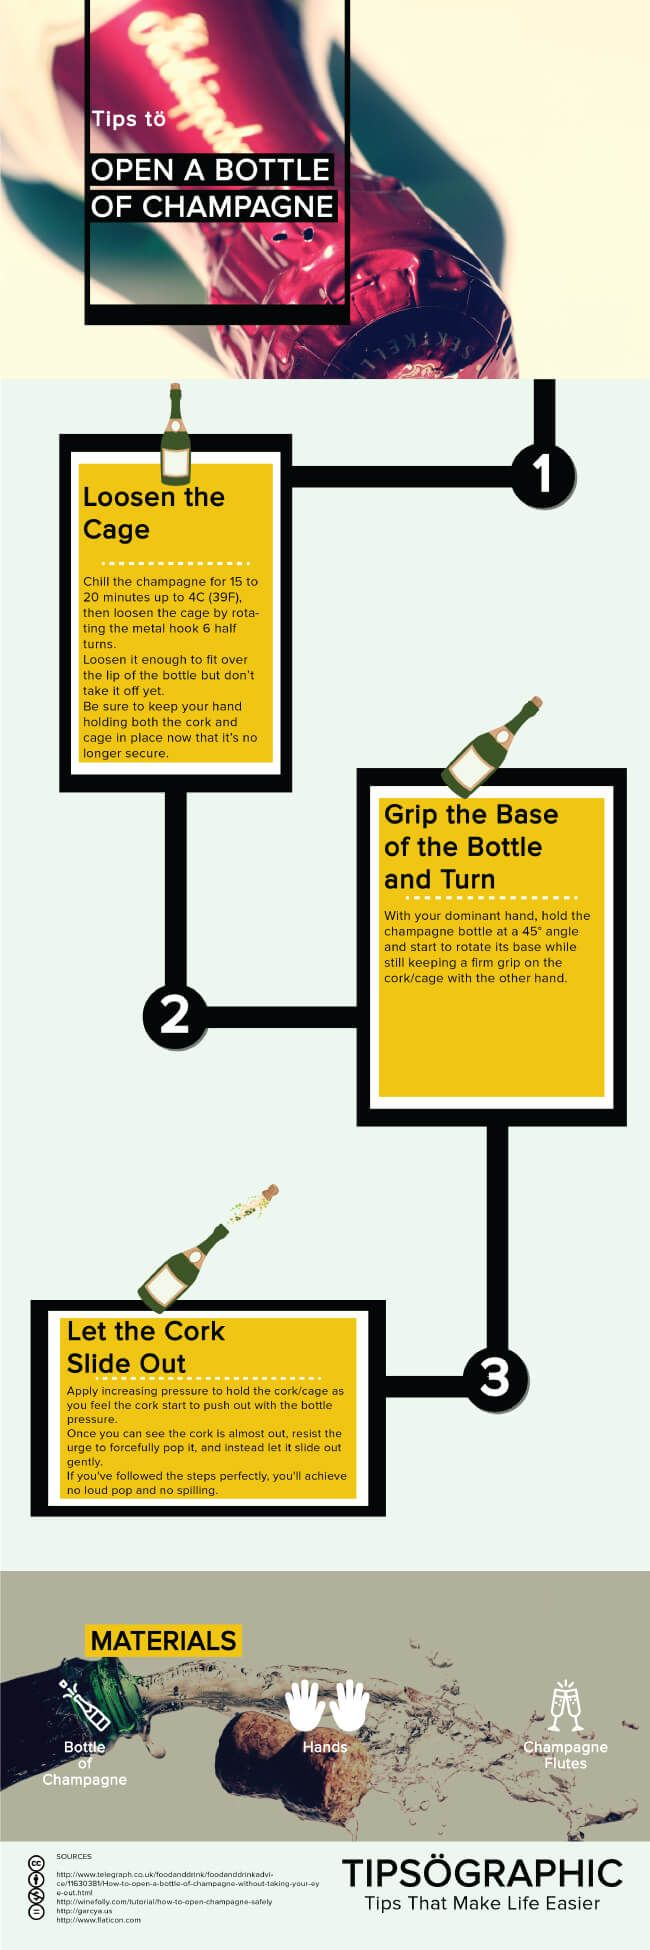 Tips to Open a Bottle of Champagne Safely Tipsographic Main